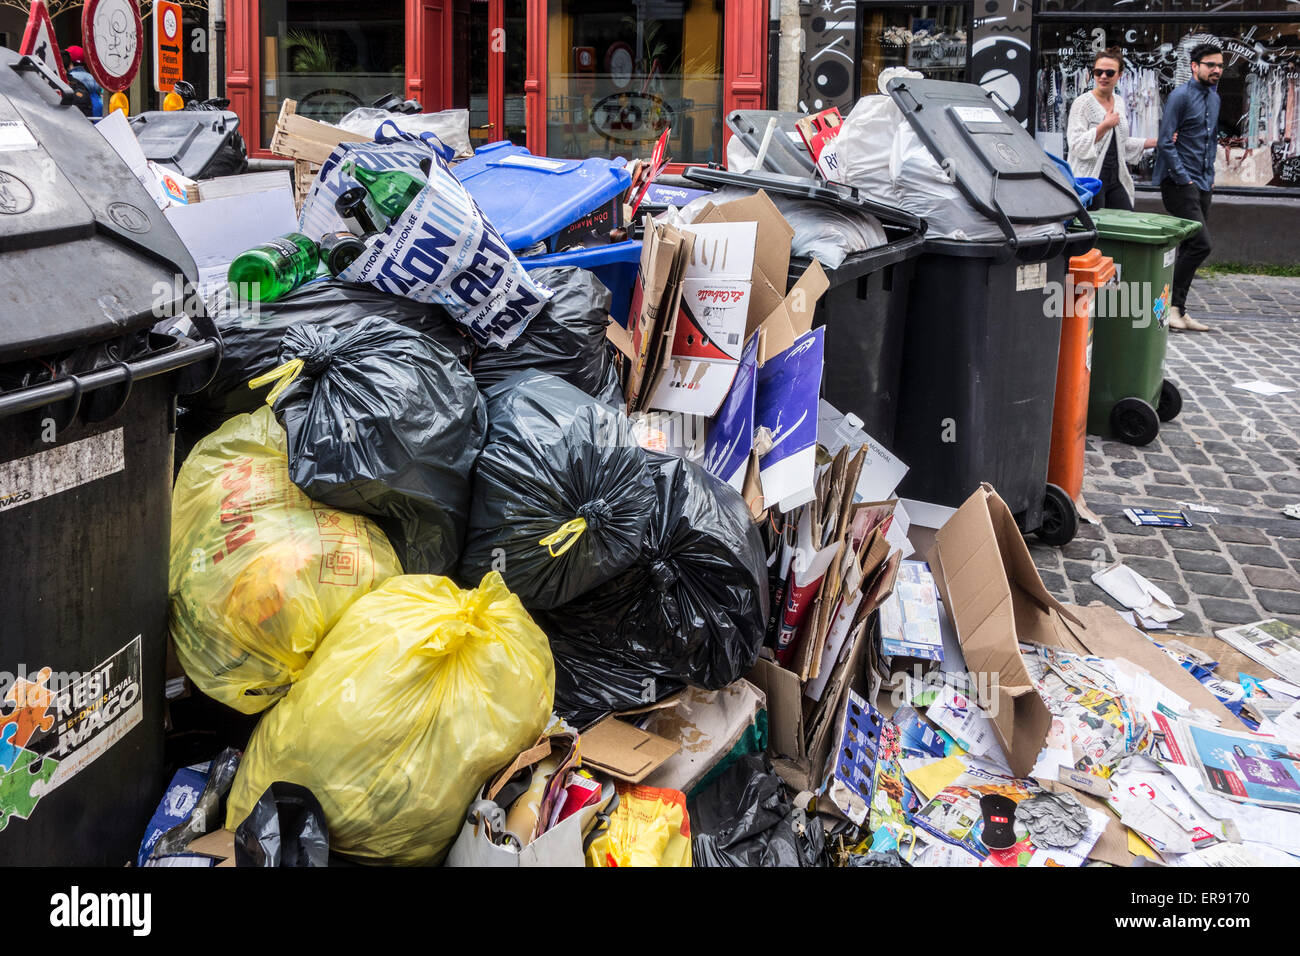 Pile of rubbish bags and garbage containers with household refuse blocking street in city due to strike by waste - Stock Image